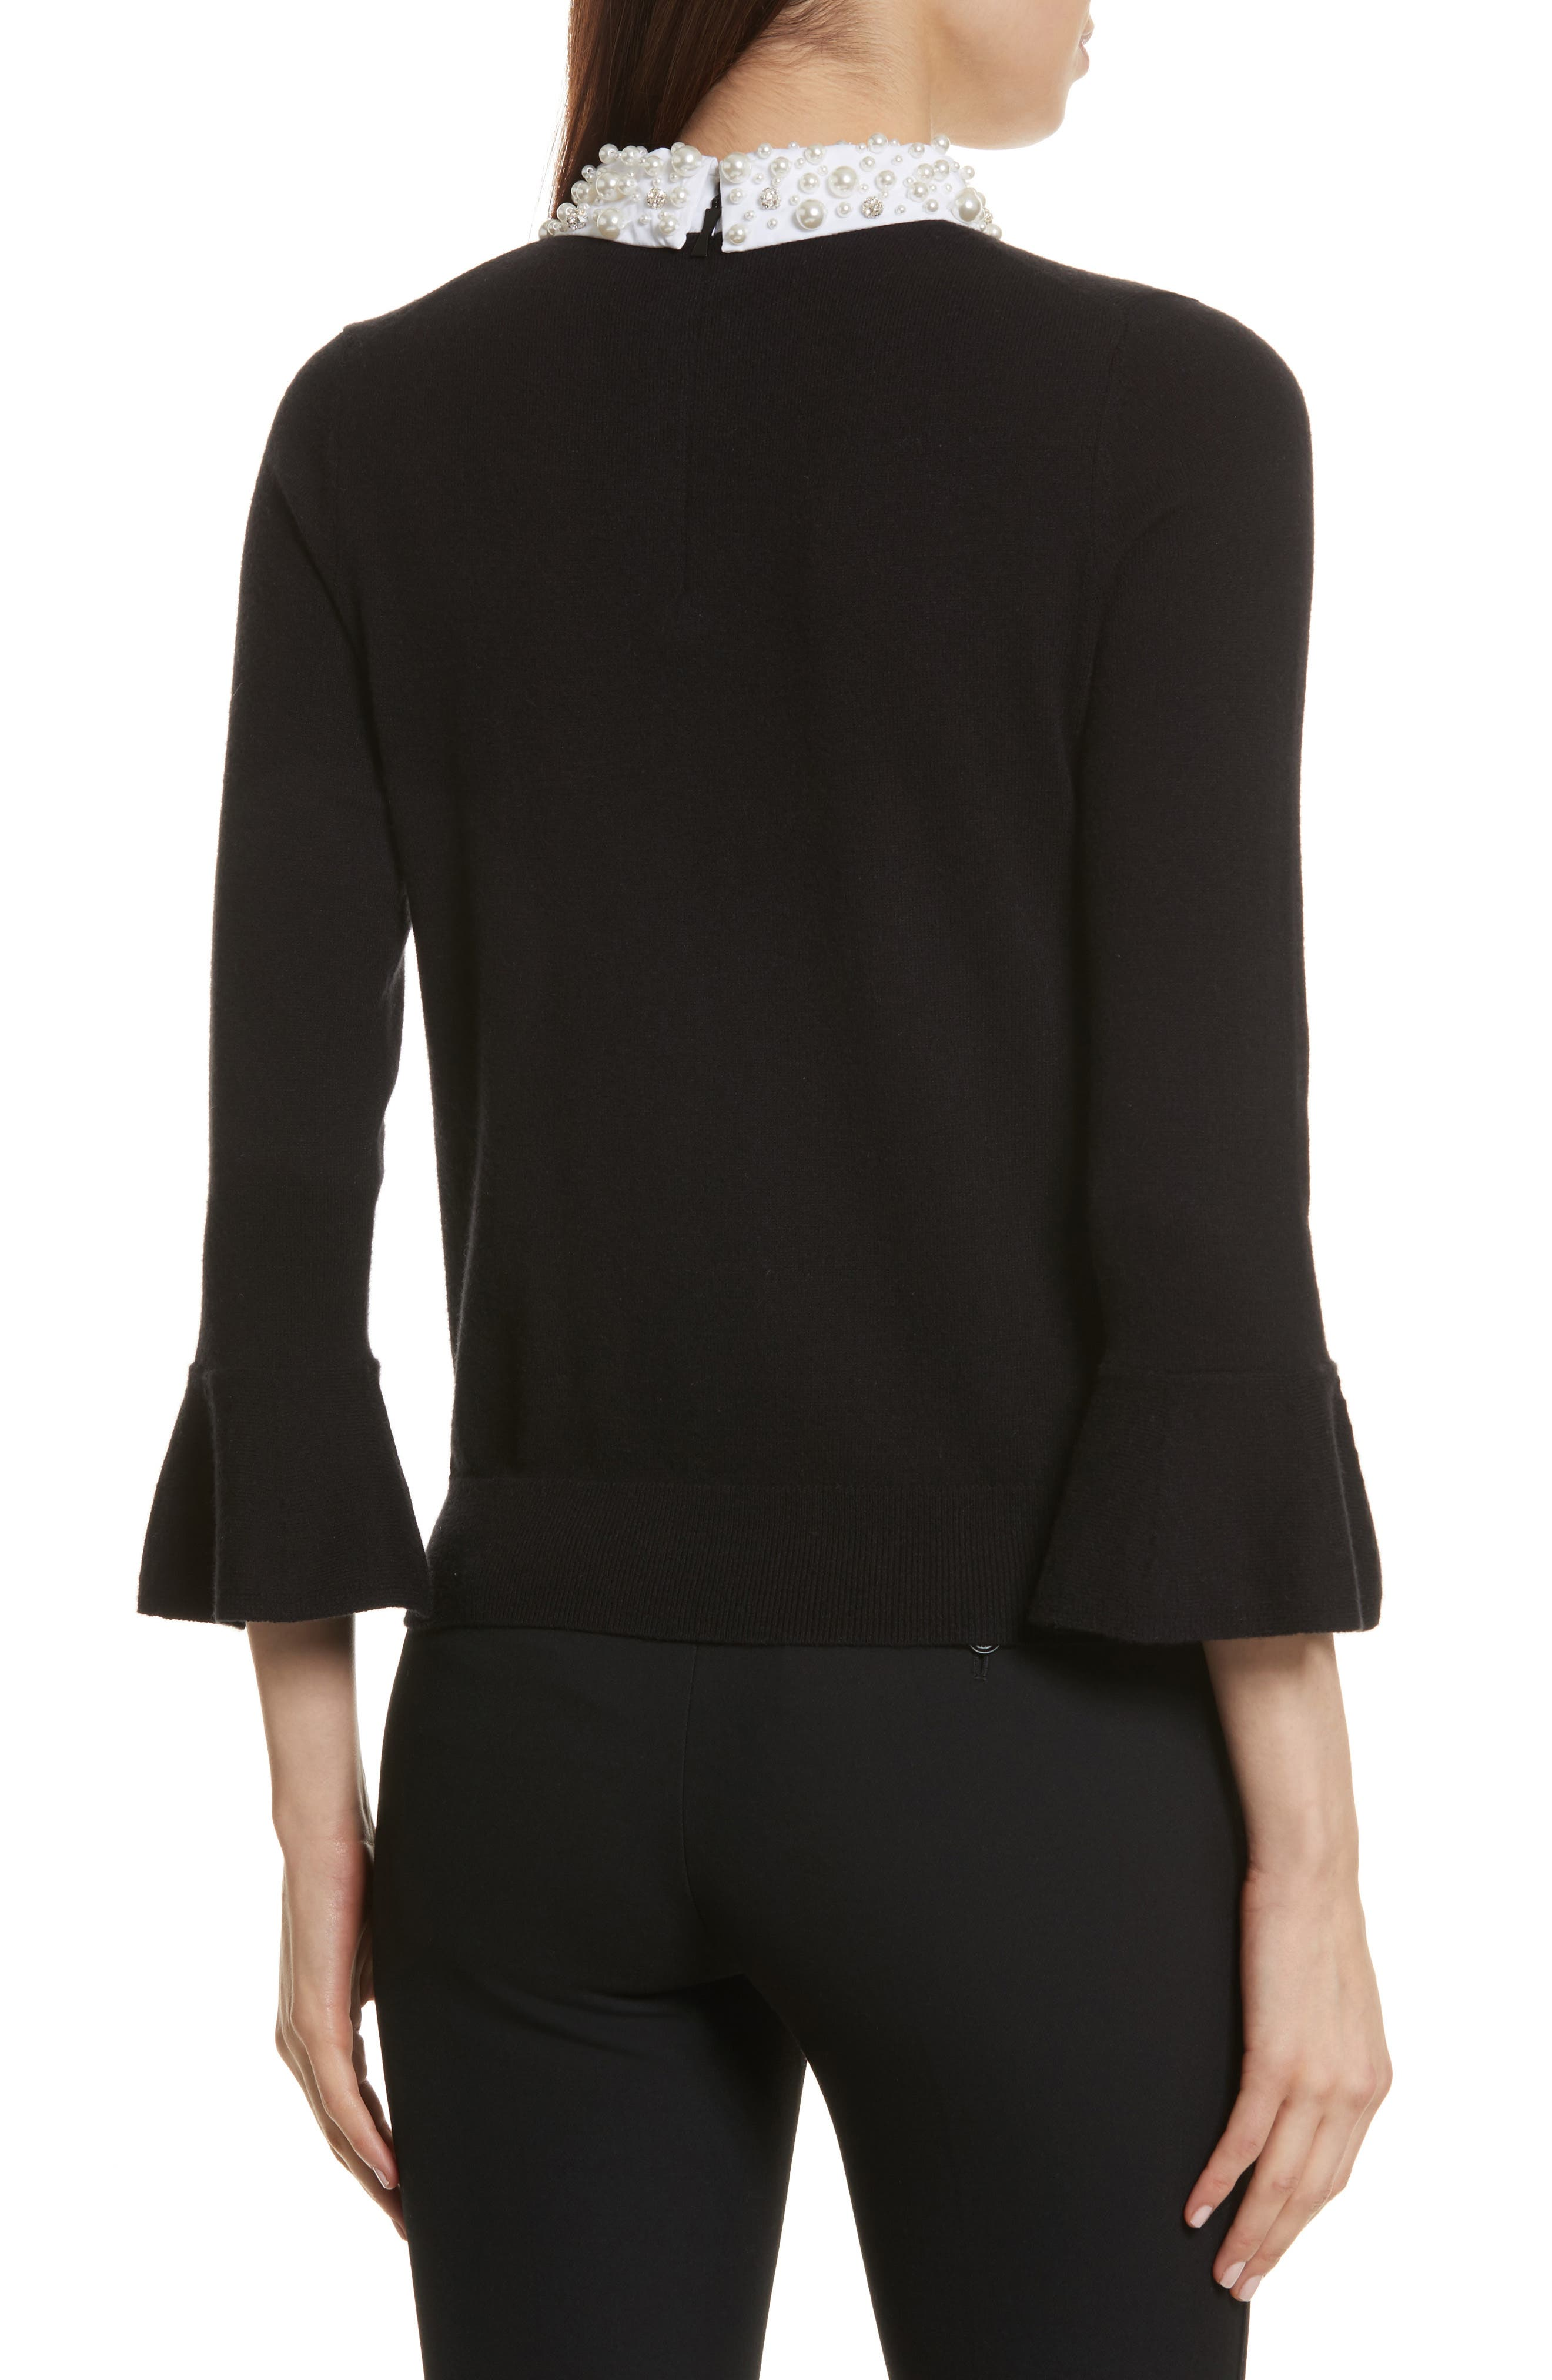 embellished collar sweater,                             Alternate thumbnail 2, color,                             001